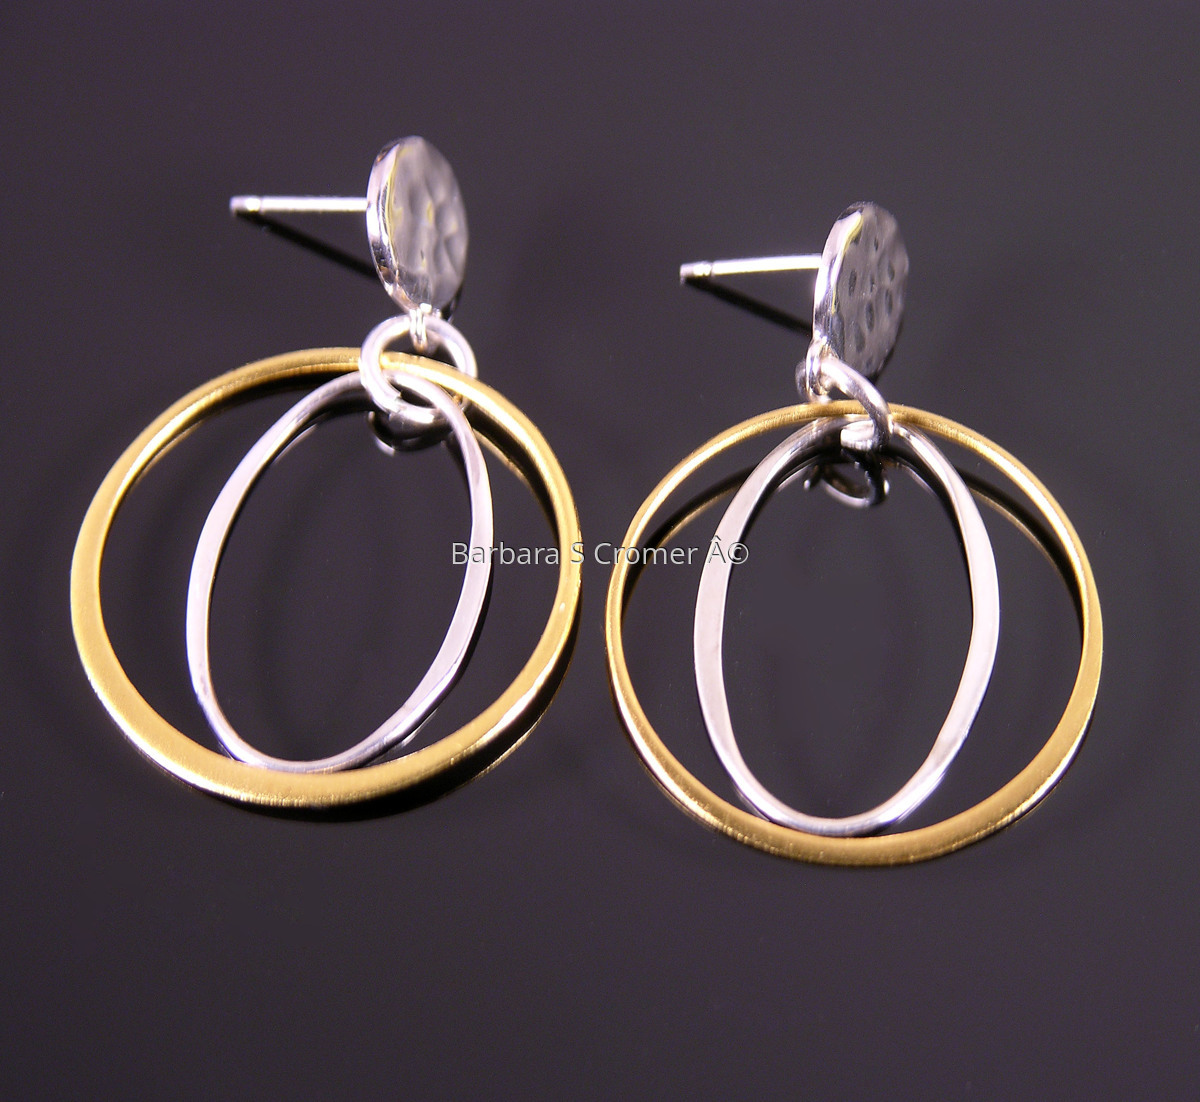 Vermeil ring + silver oval earrings (large view)